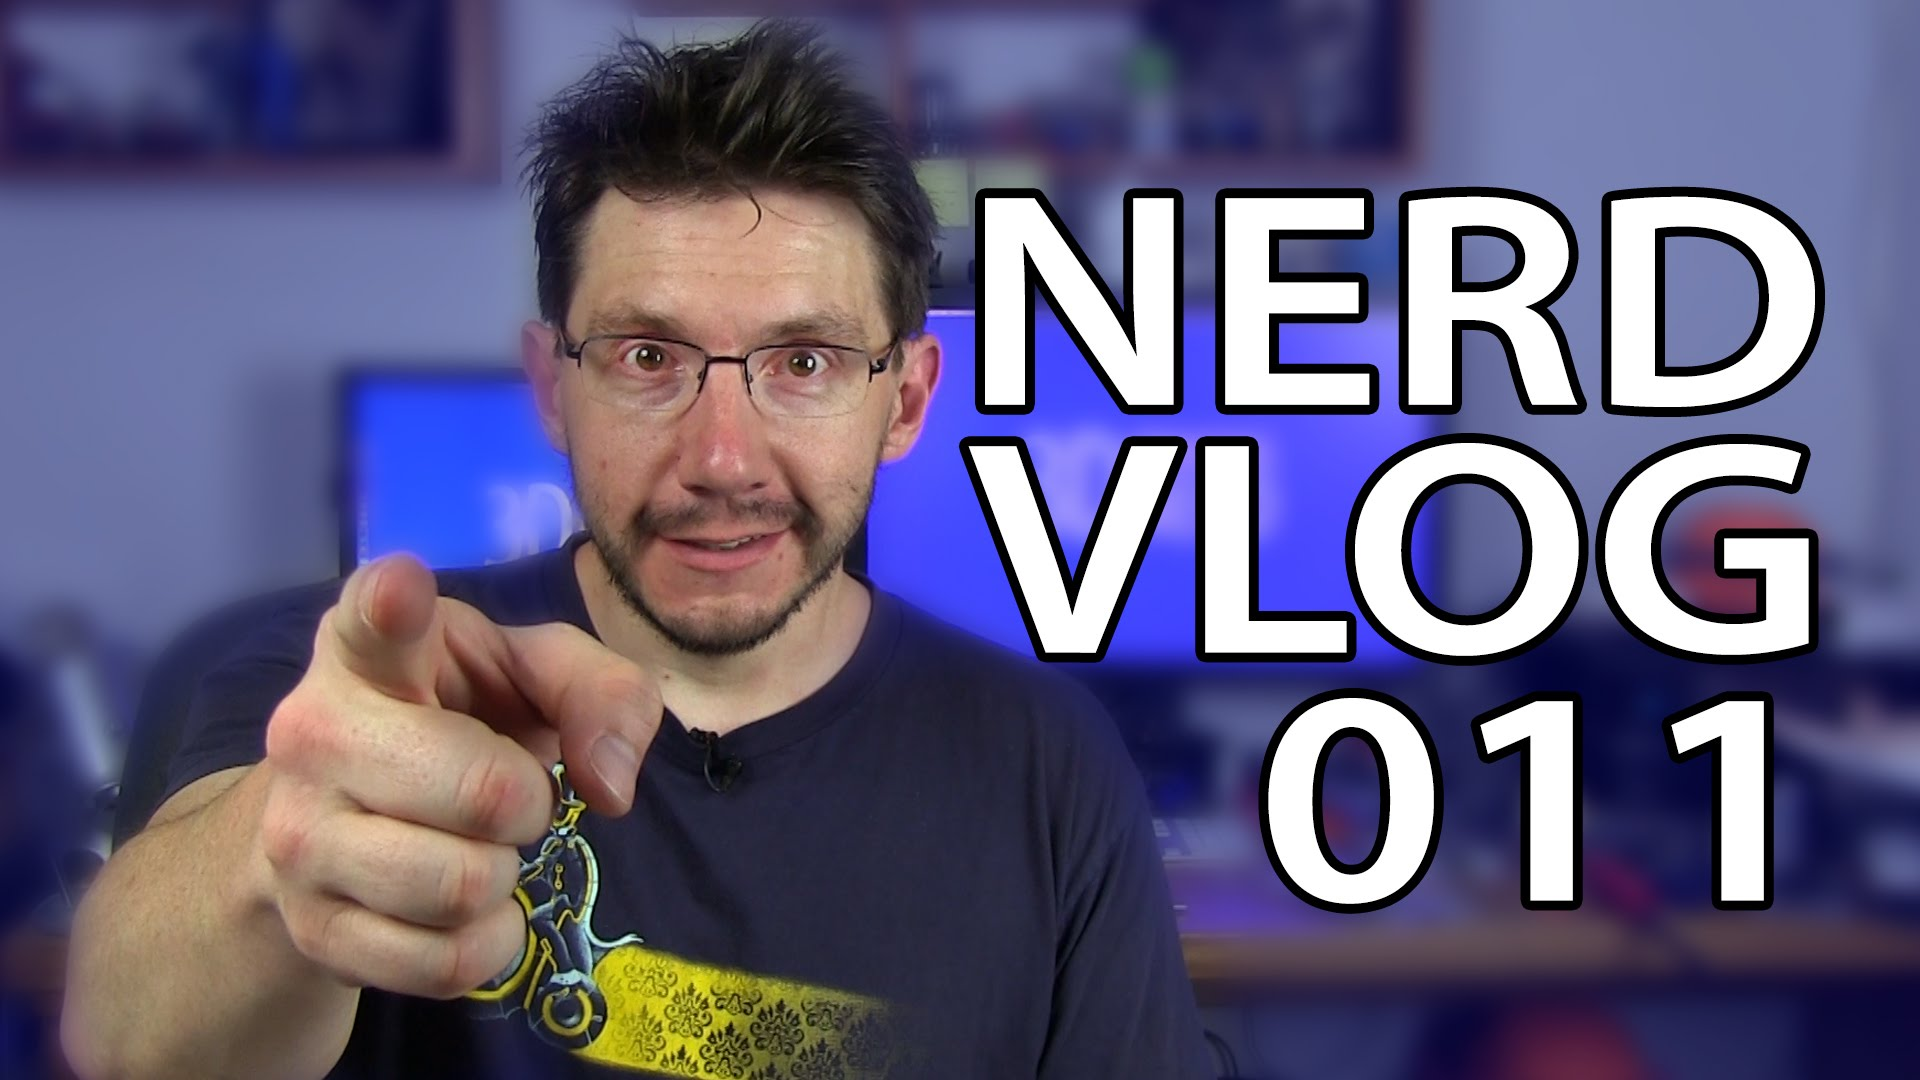 Nerd Vlog 011 – 3D Printing Channel Update